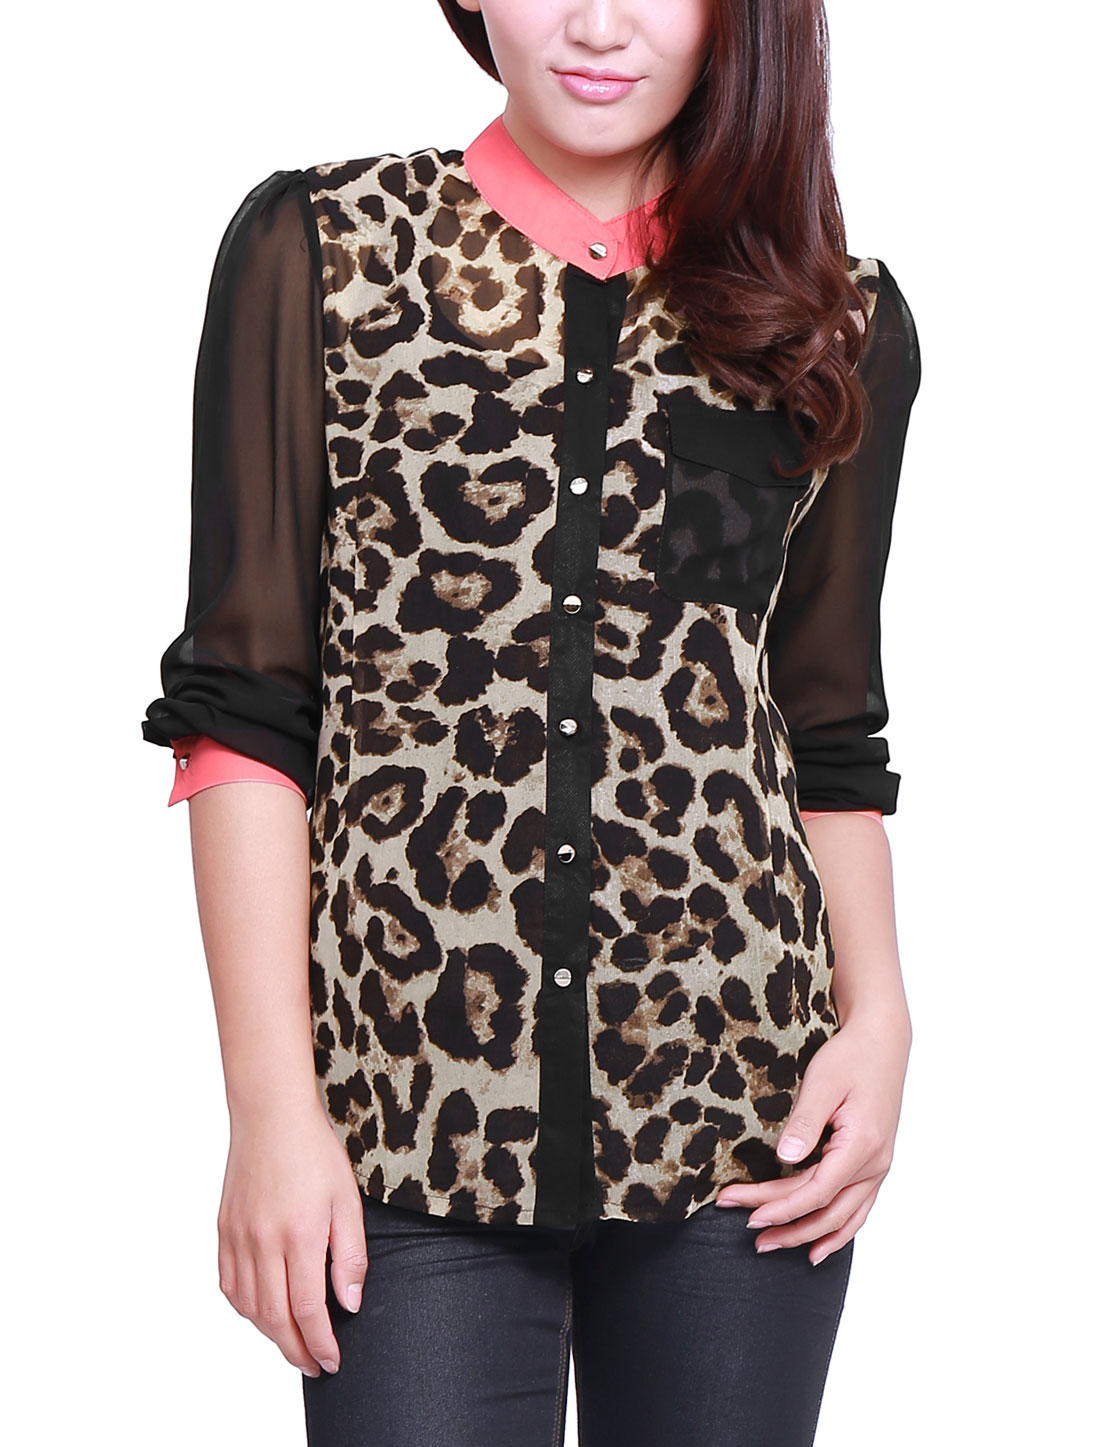 Ladies Chic Black Brown Leopard Prints Semi-Sheer Button Down Shirt M